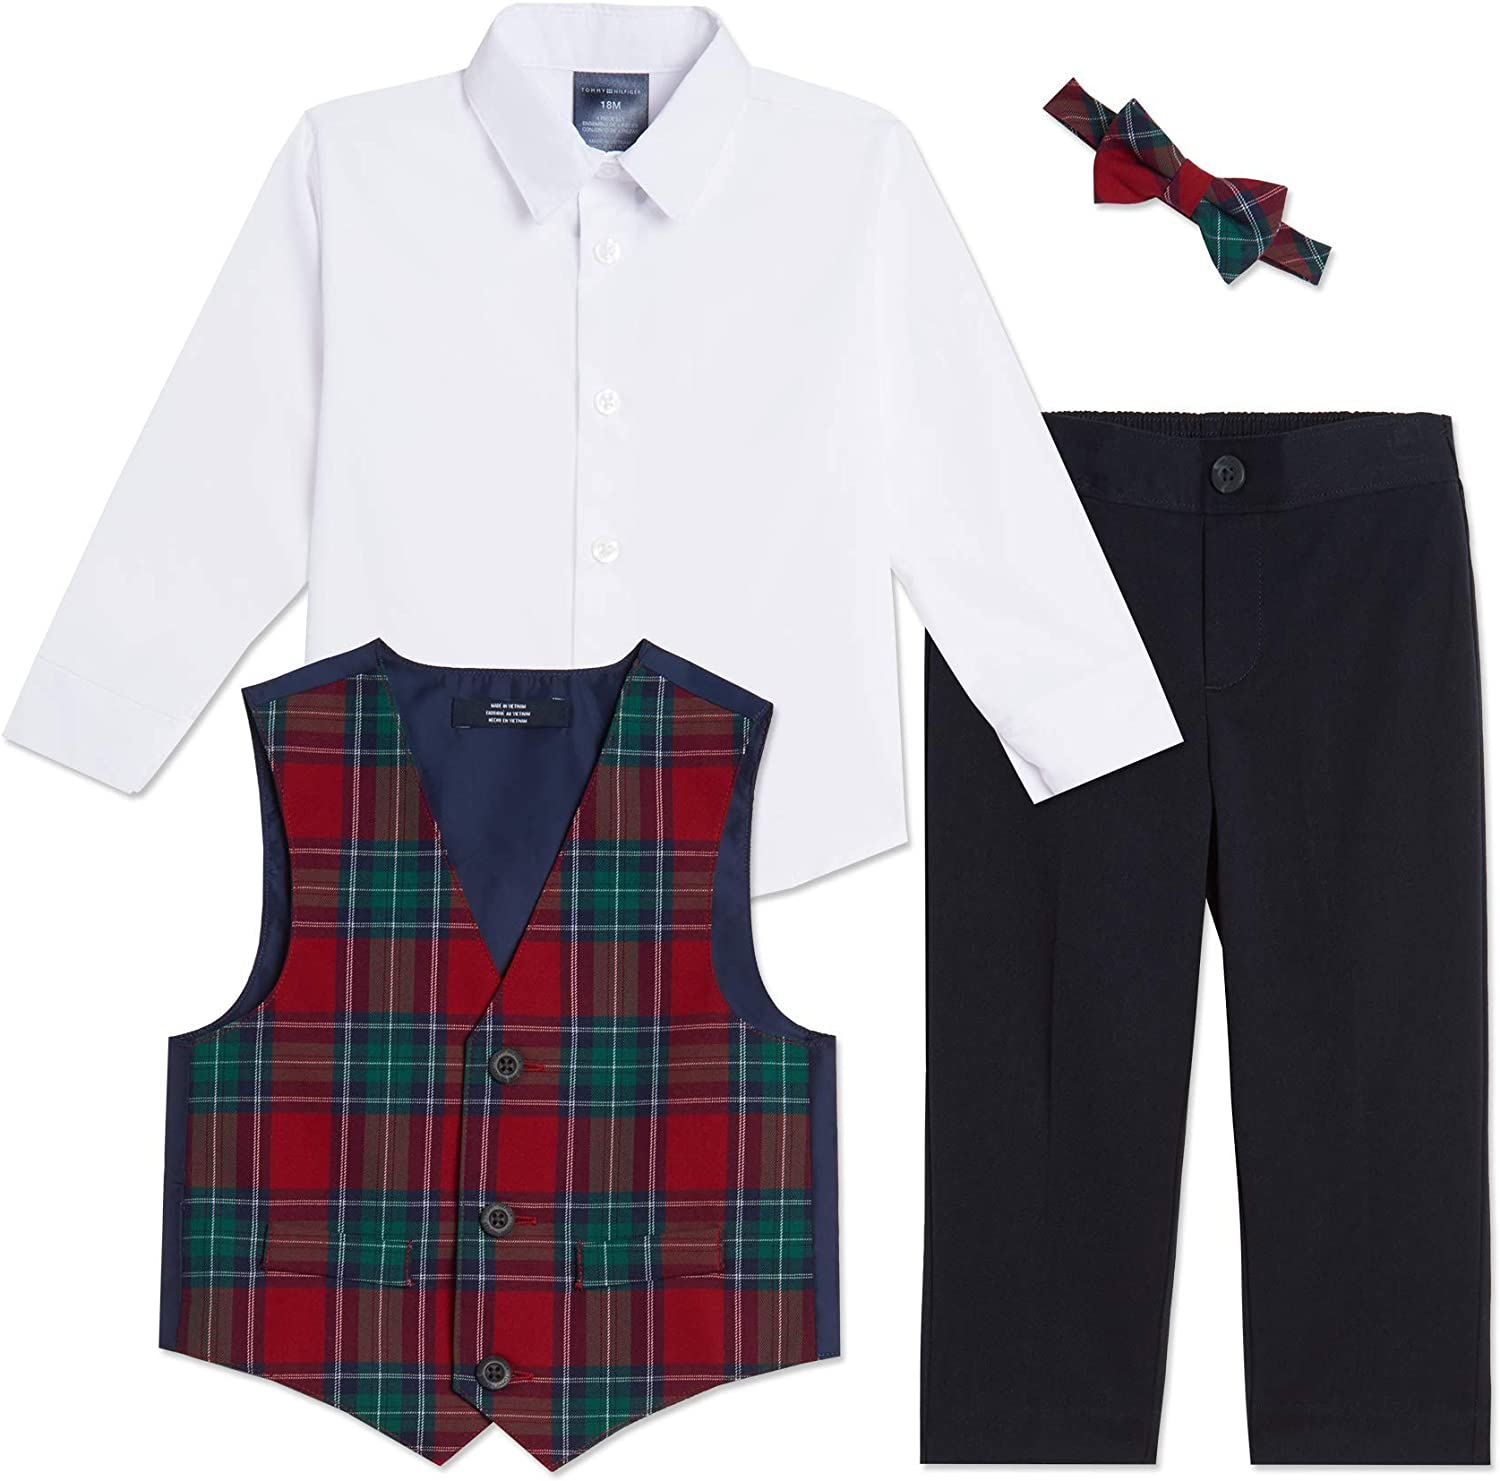 Tommy Hilfiger Baby Boys 4-pc Formal Suit Vest Set